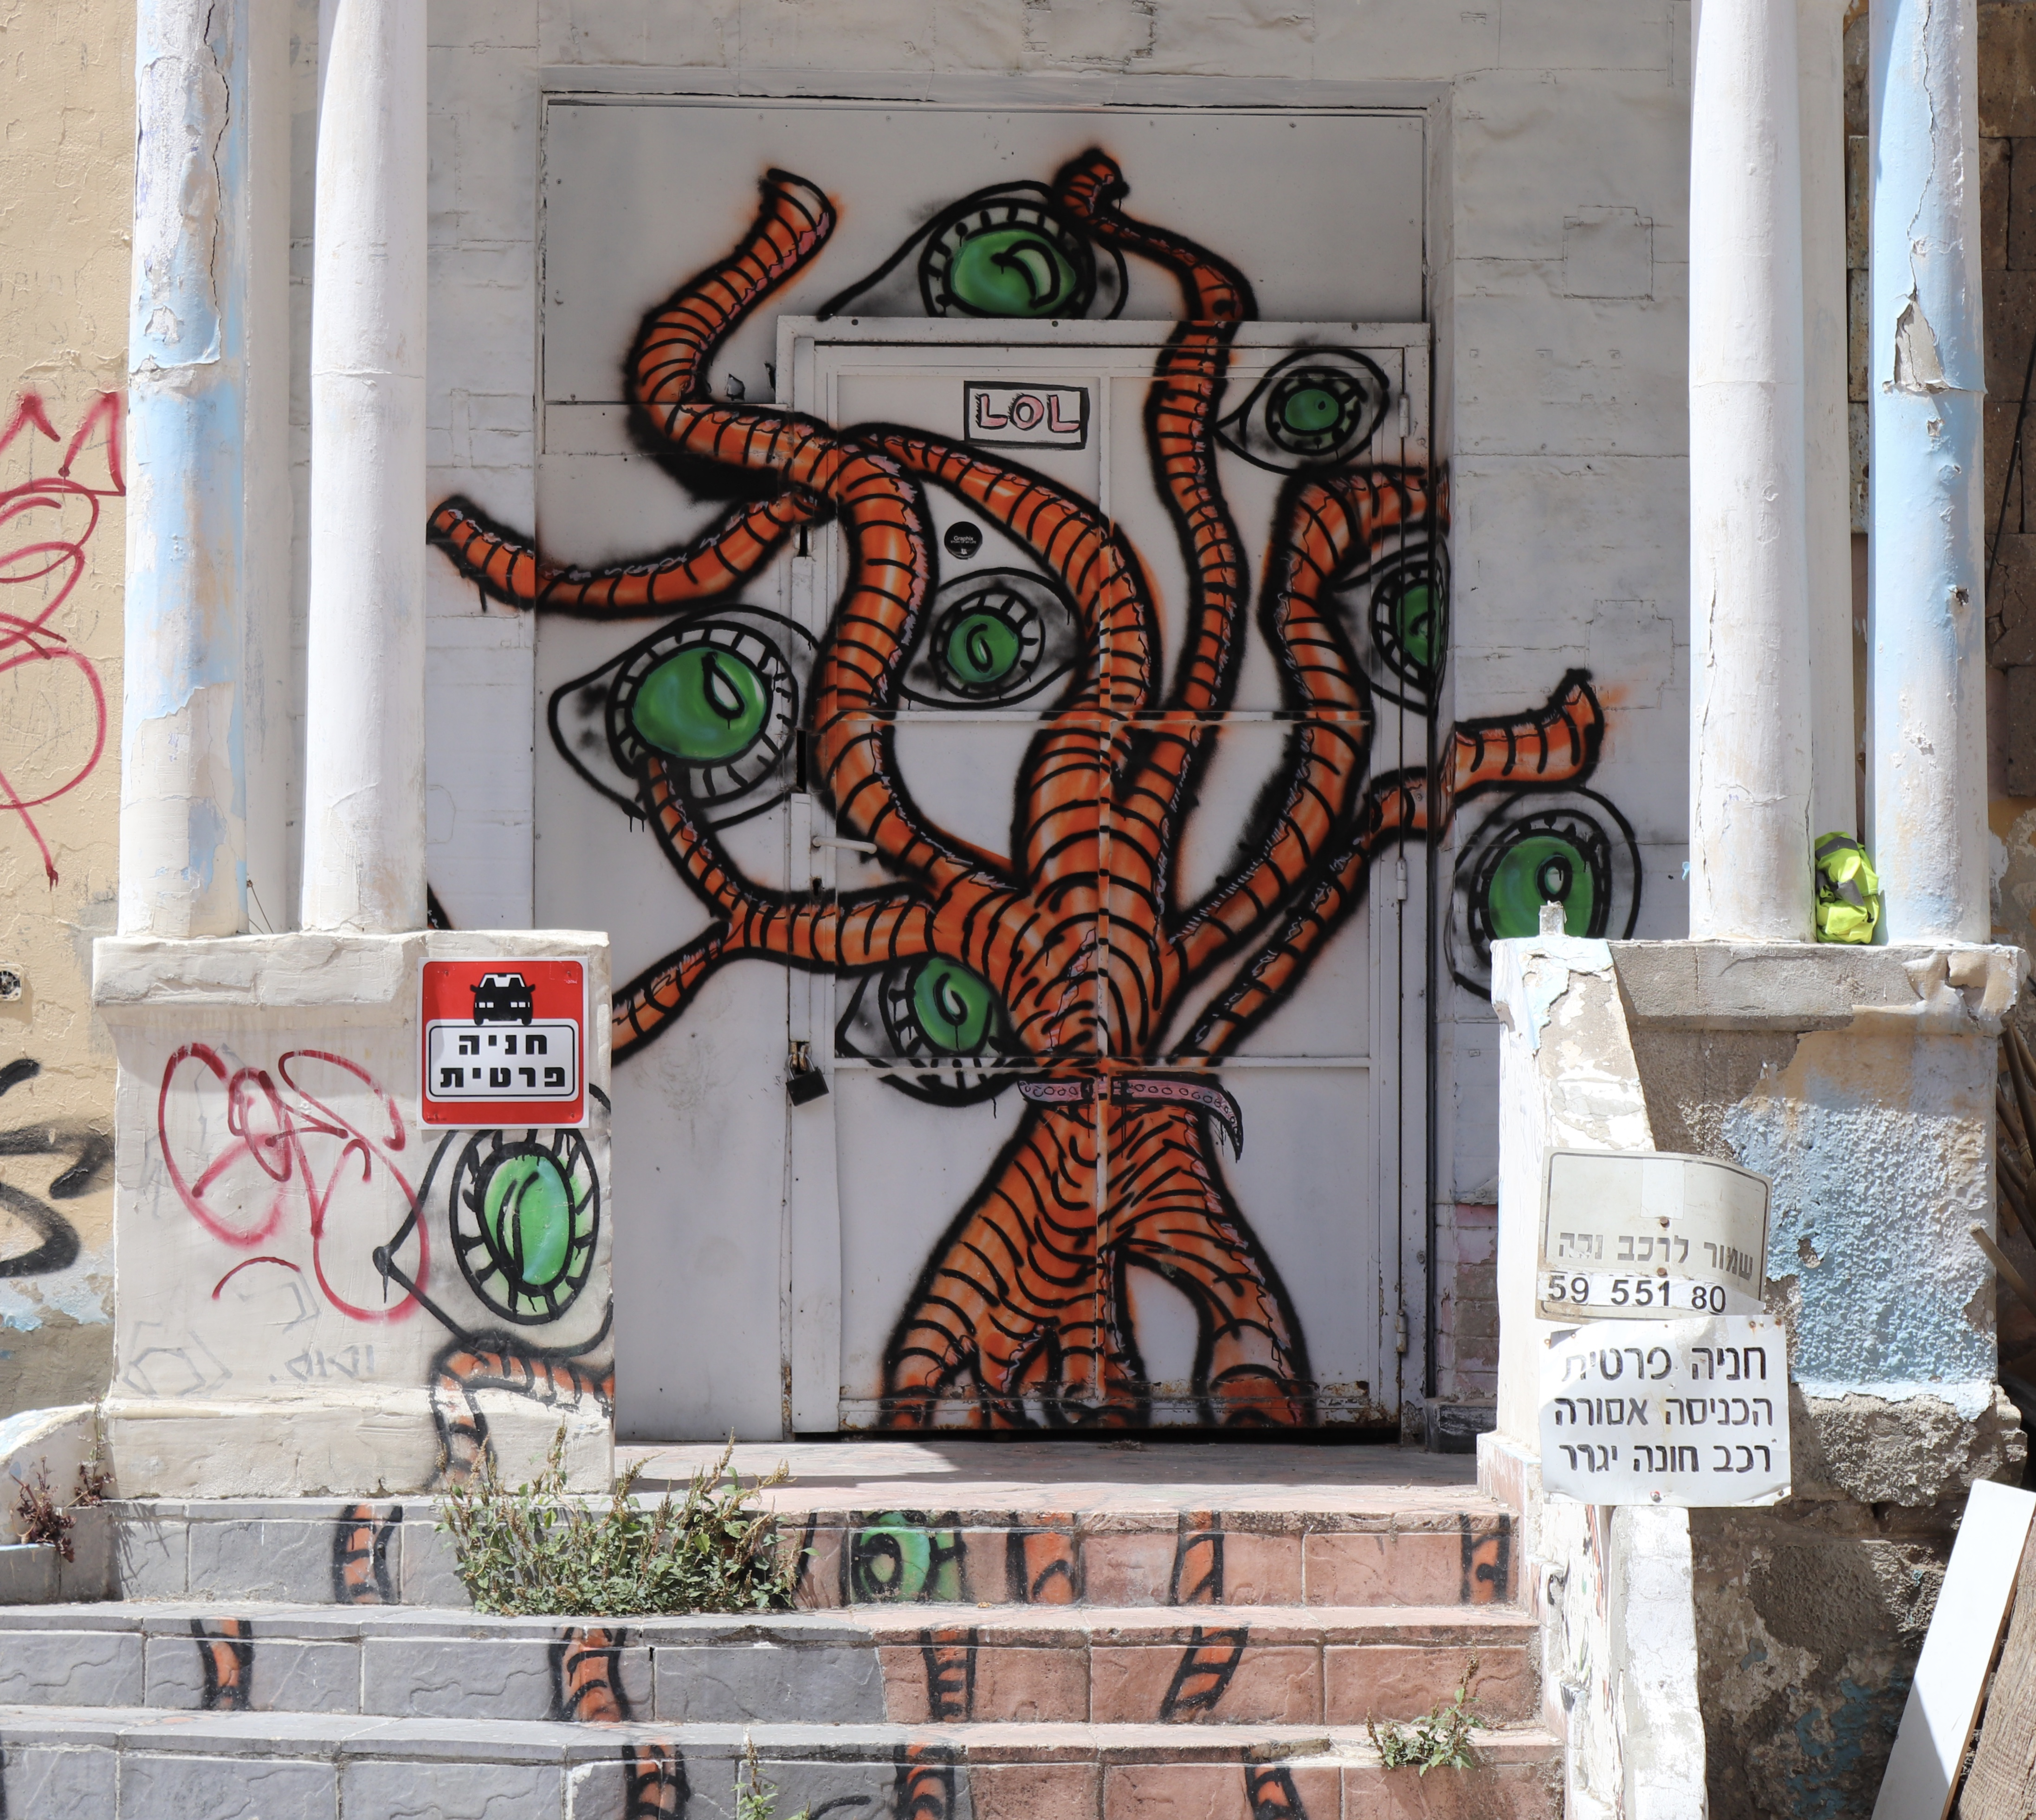 Octopus graffiti in the Yemenite quarter